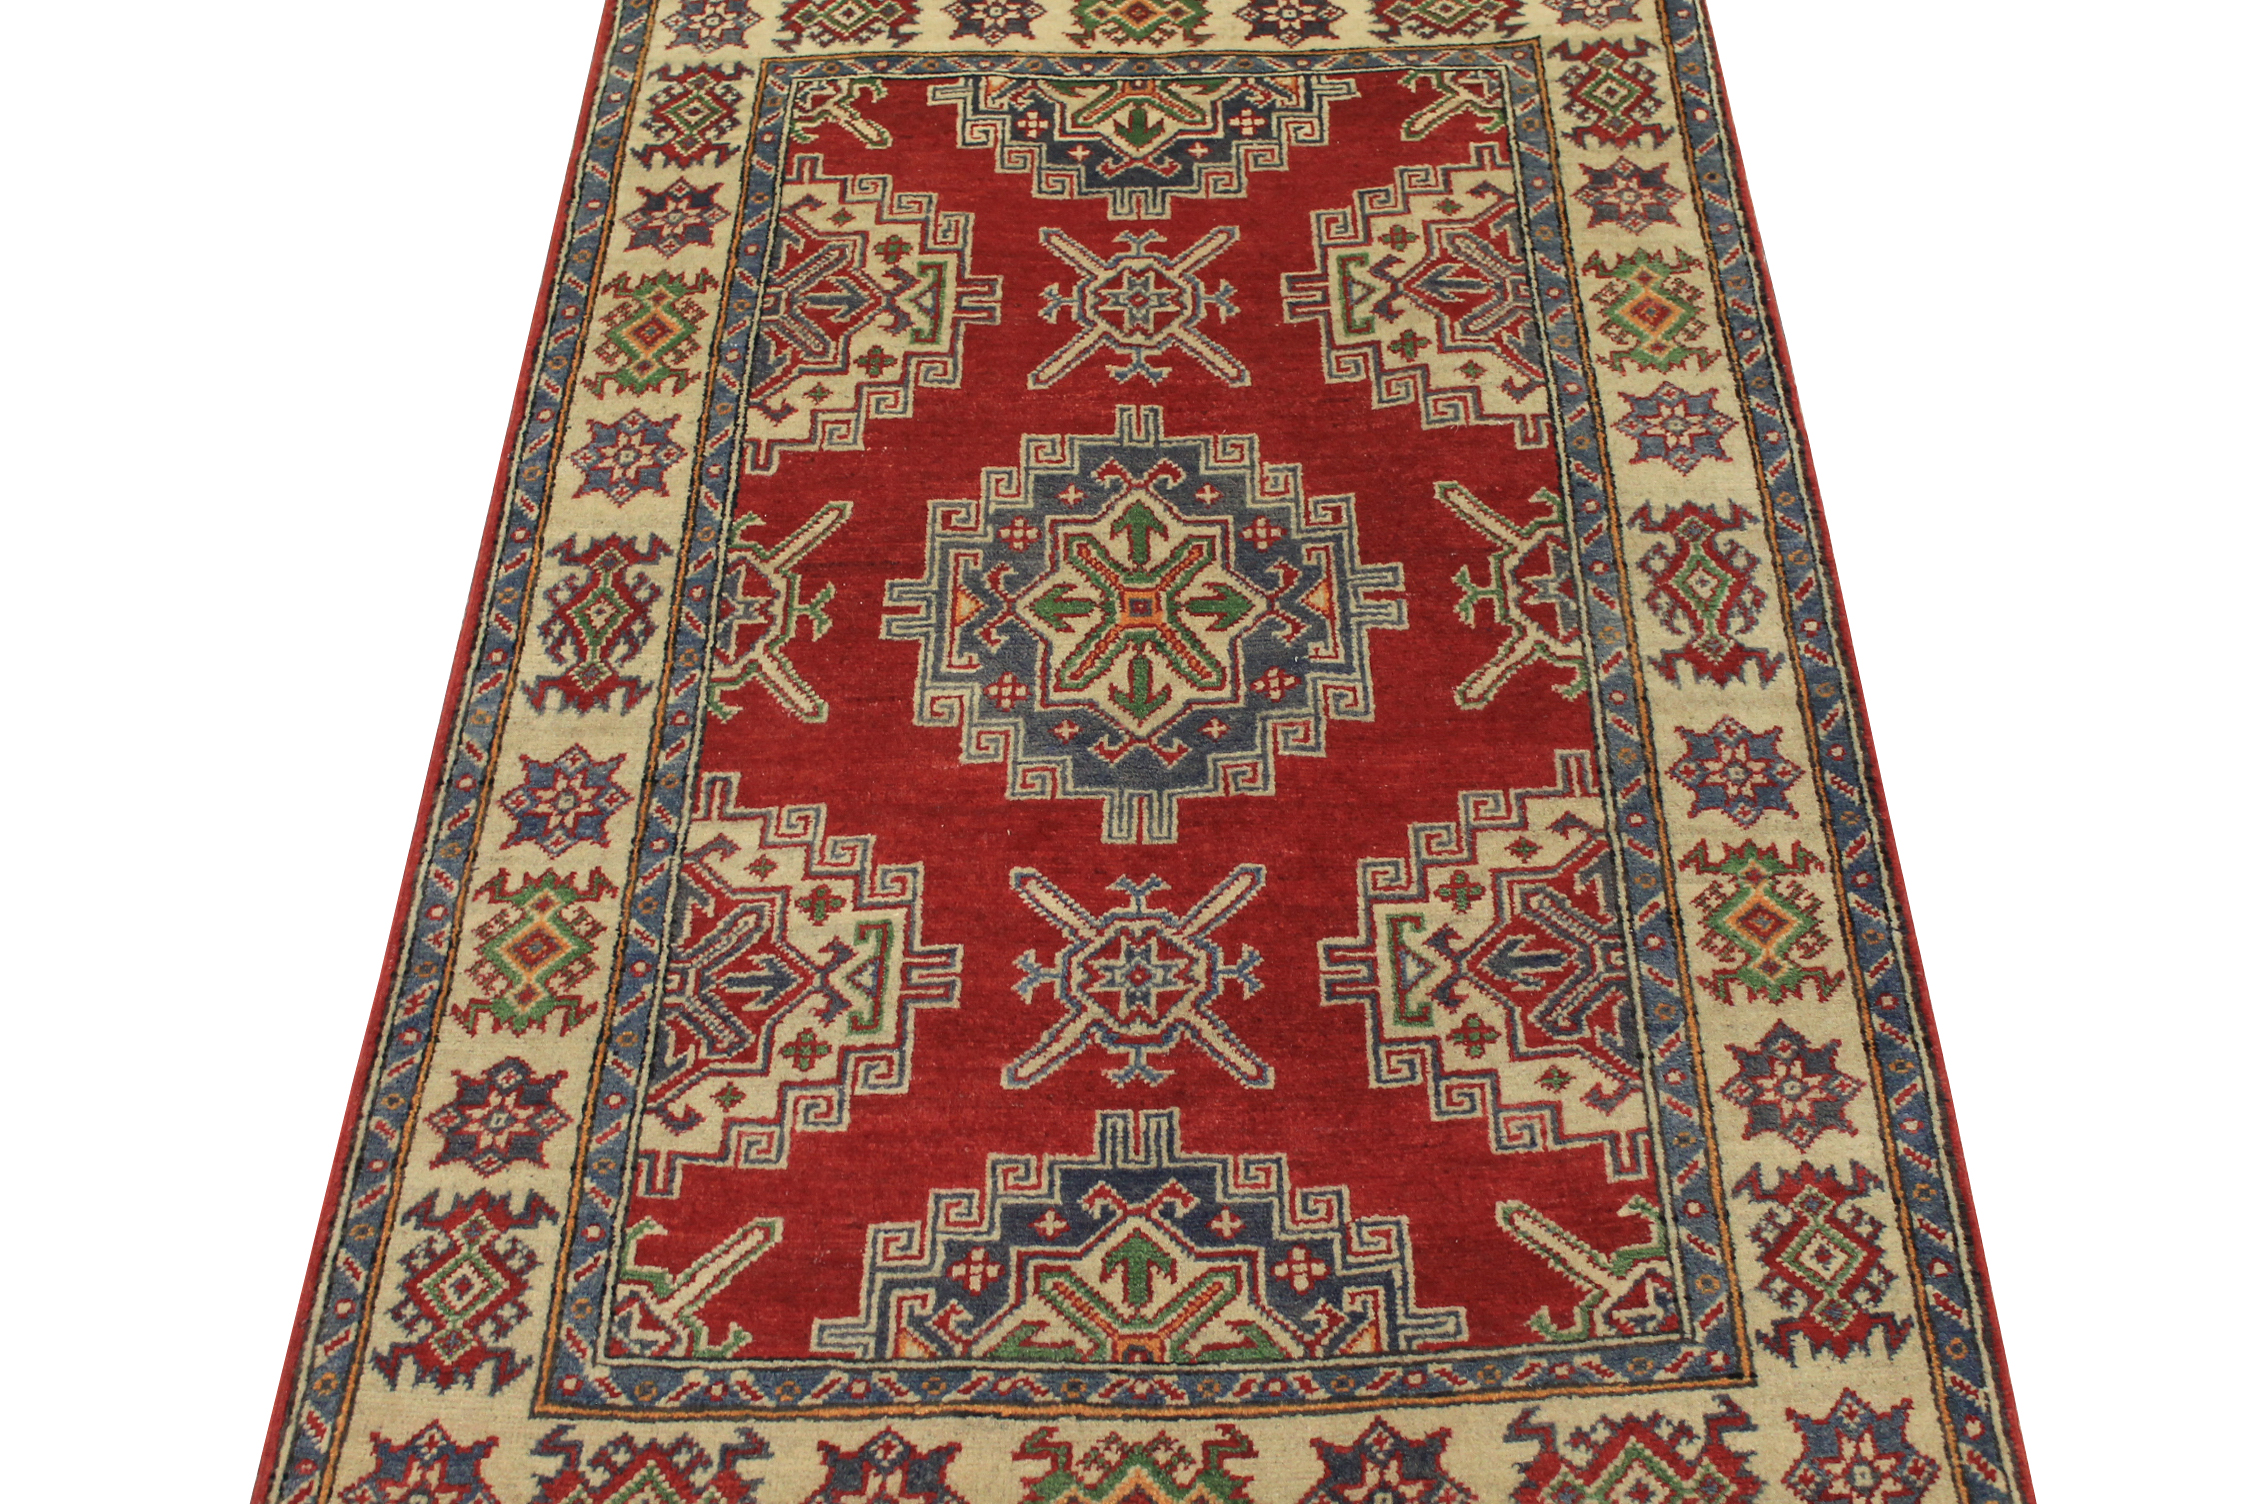 3x5 Kazak Hand Knotted Wool Area Rug - MR024540